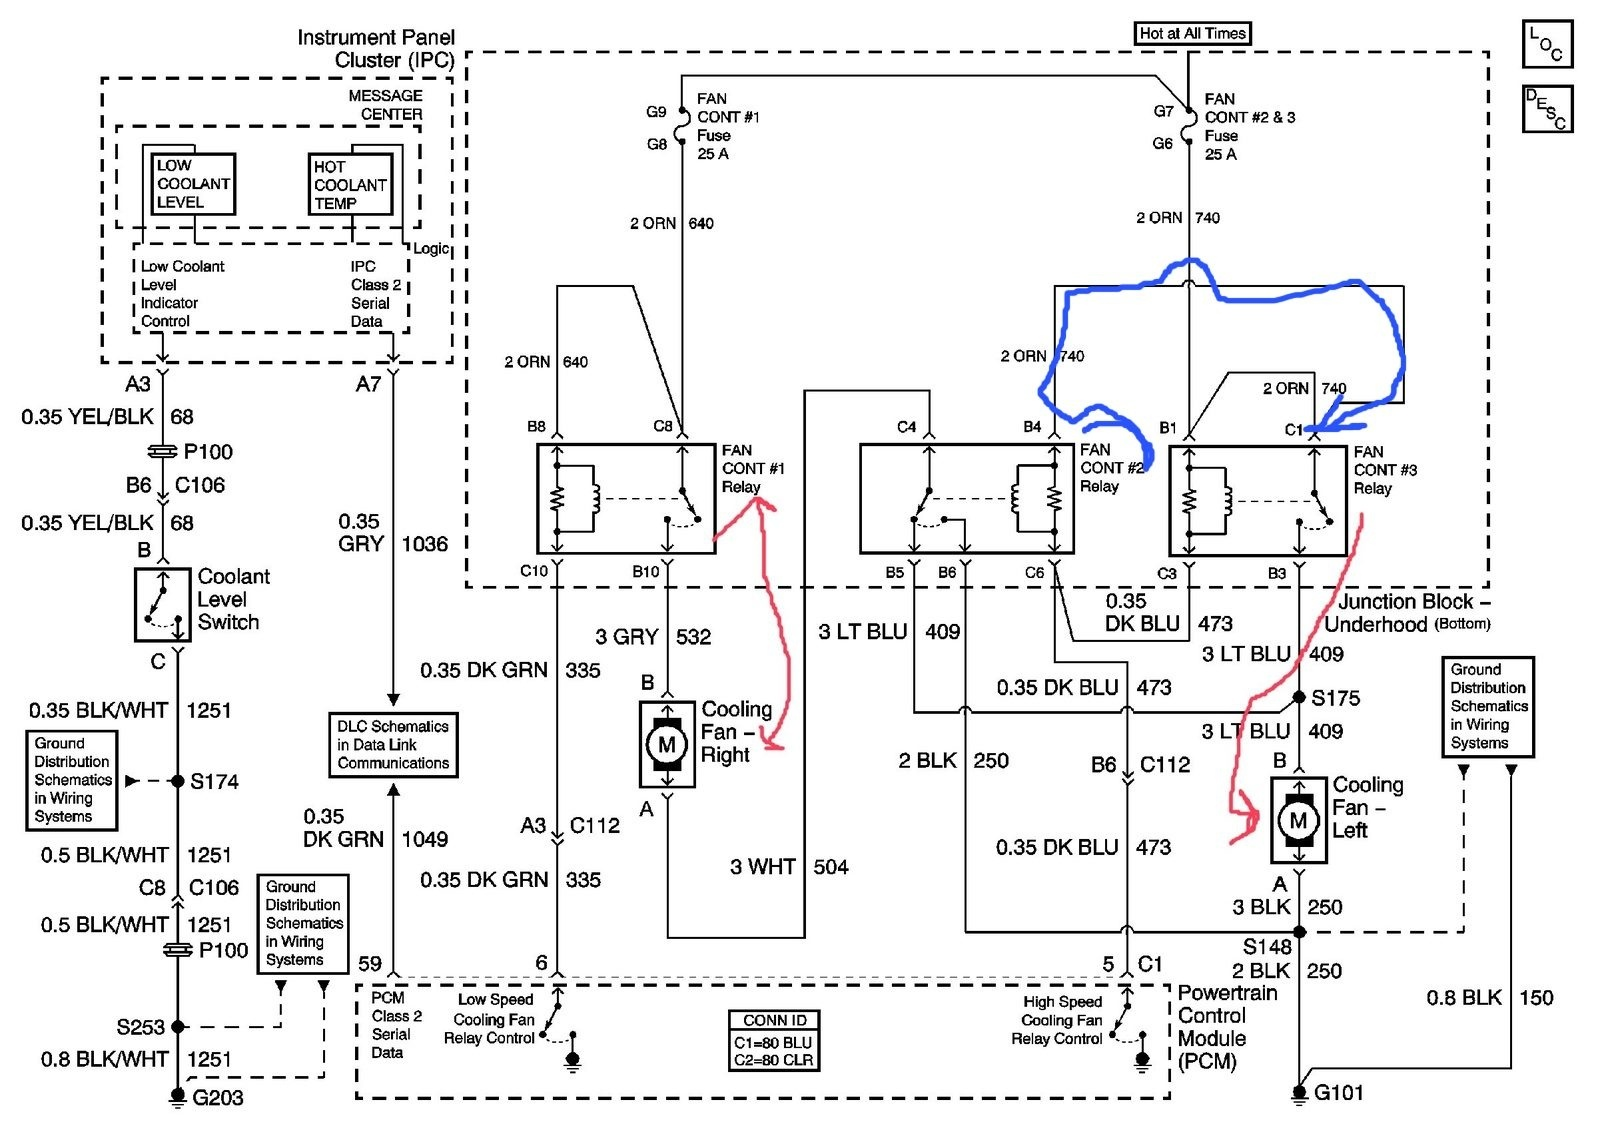 2008 Buick Enclave Fuse Box Diagram Wiring Diagrams likewise 2007 Chevy Cobalt Coolant Sensor Location furthermore 2005 Buick Rainier Suspension Diagram additionally T9451576 Horn not working together with 2005 Chevy Equinox Blower Wiring Diagram. on 2005 buick lacrosse battery